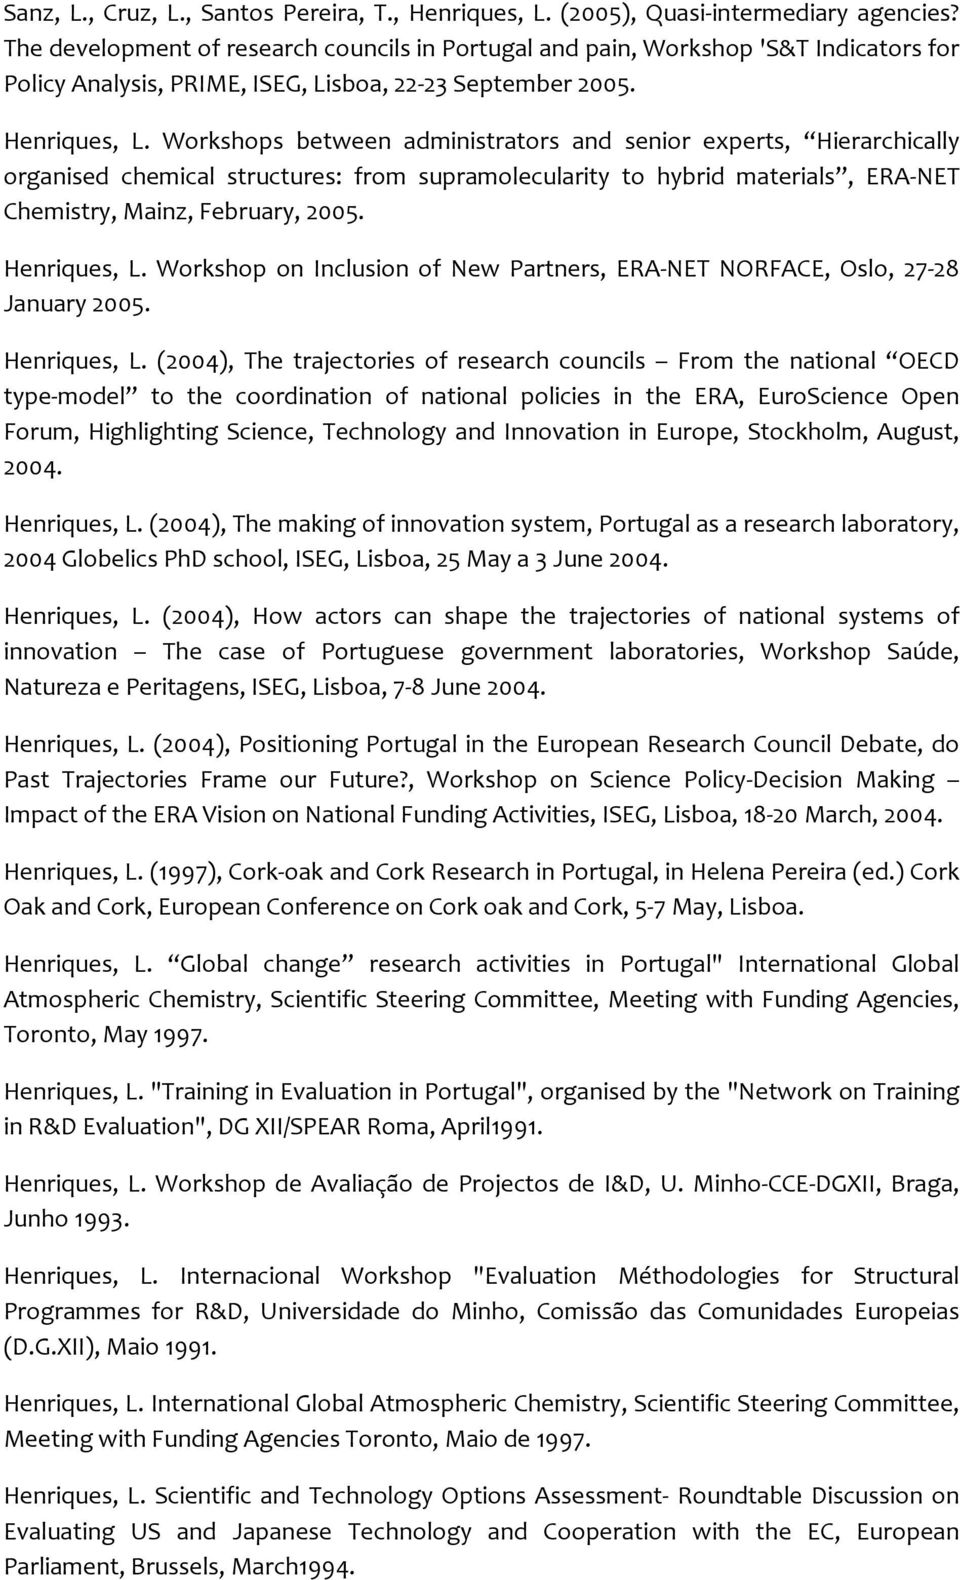 Workshops between administrators and senior experts, Hierarchically organised chemical structures: from supramolecularity to hybrid materials, ERA- NET Chemistry, Mainz, February, 2005. Henriques, L.